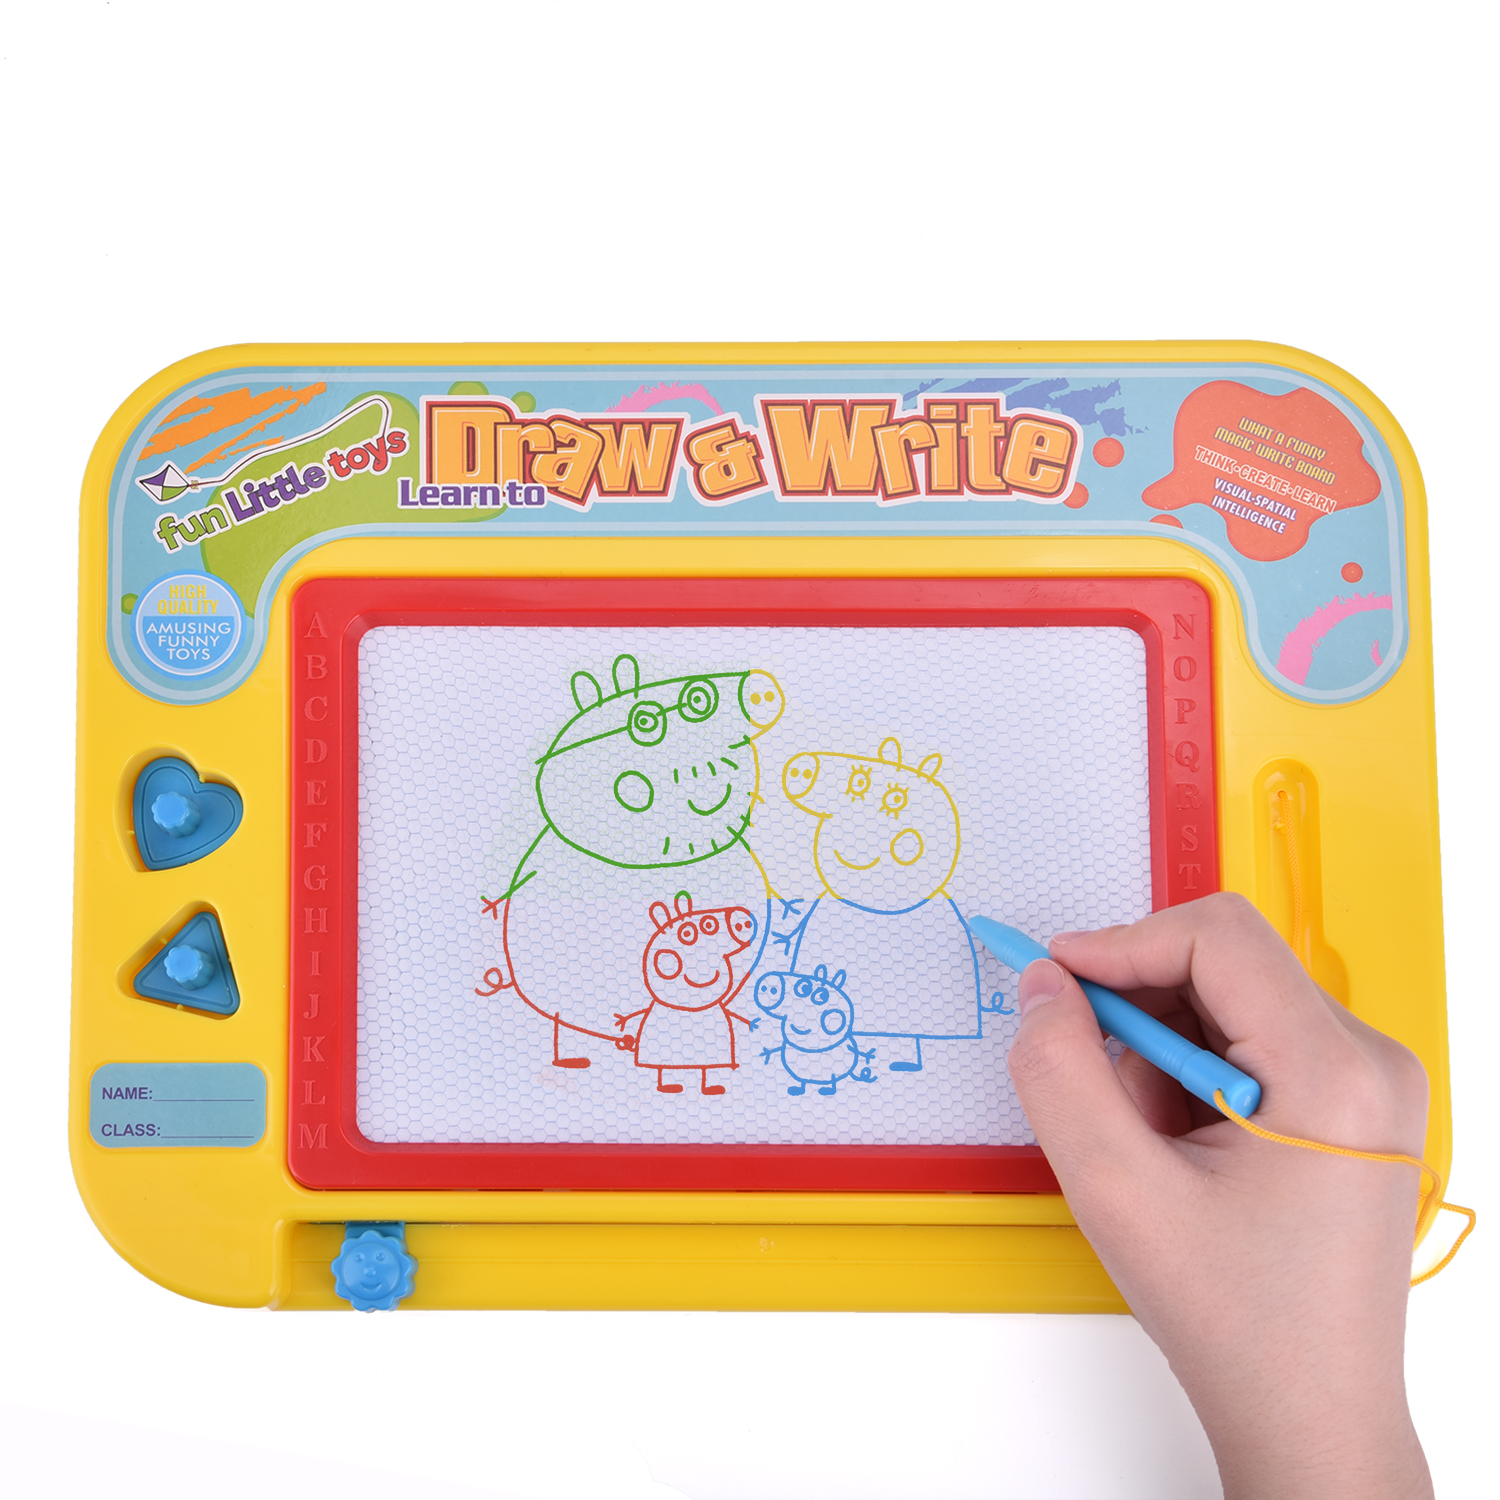 Magna Doodle Magnetic Drawing Board for Kids 4 Color Zones Erasable Sketching Writing Pad Stationery Educational Toy for Gifts Includes a Stylus Pen and 2 Stamps F-175